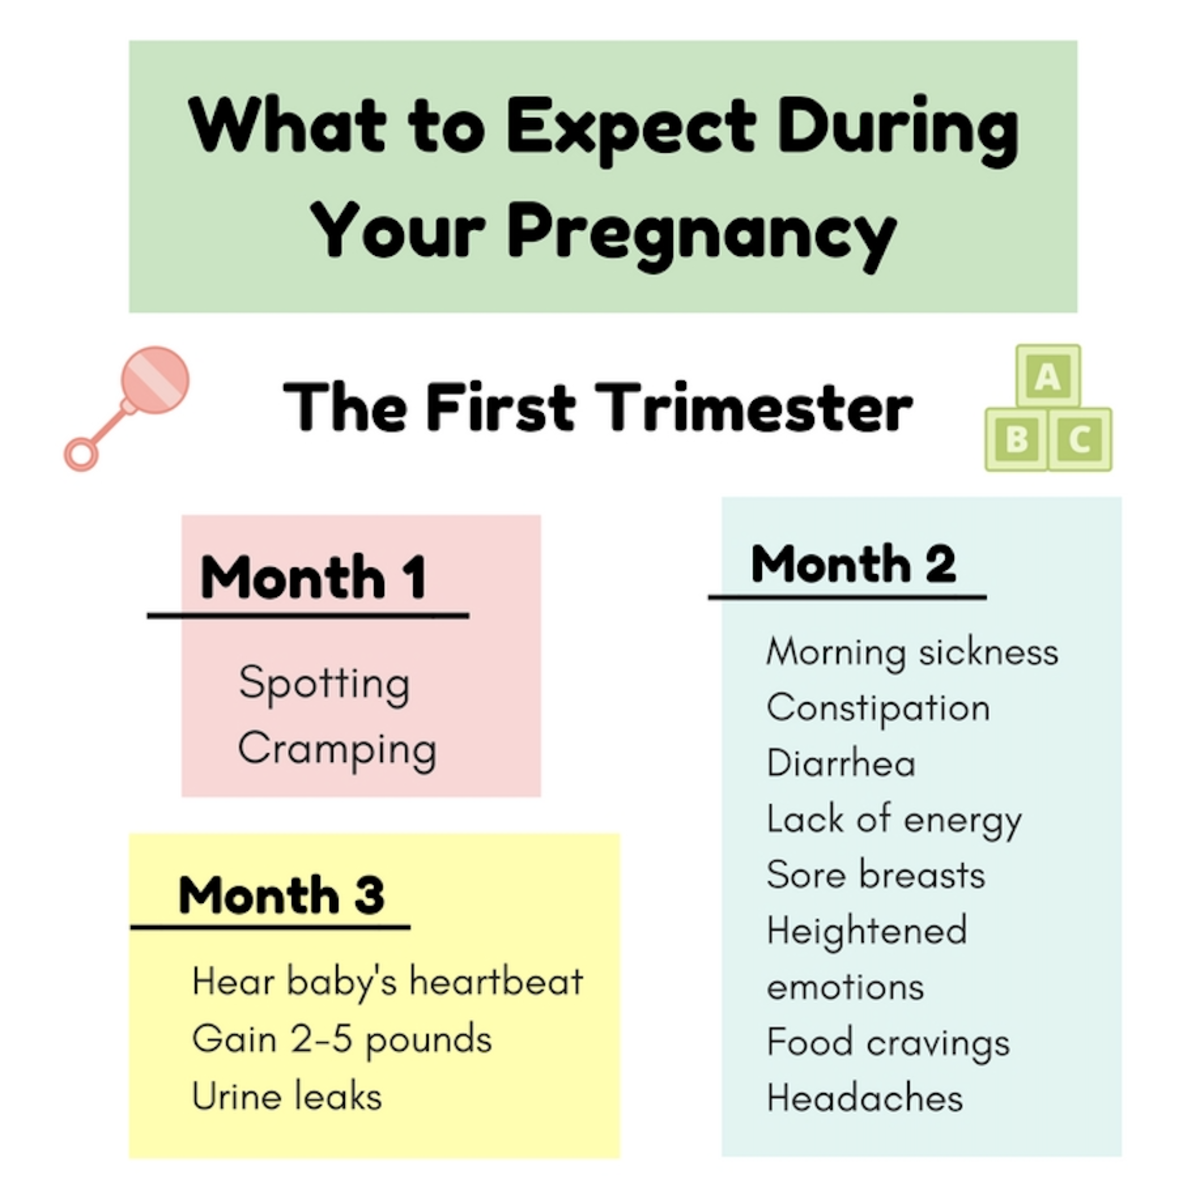 What to Expect During Your Pregnancy During the First Trimester